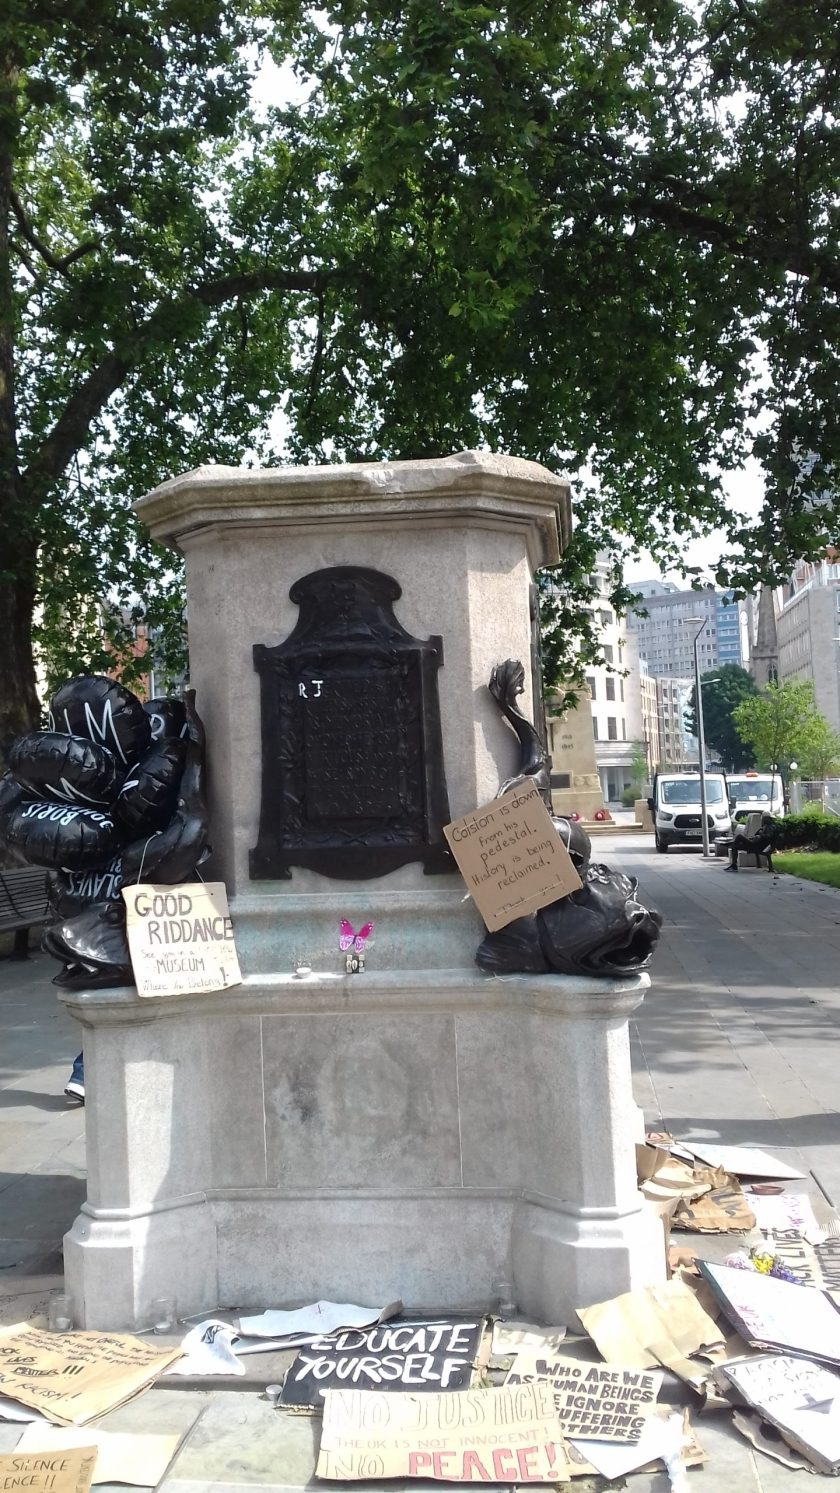 The plinth with psters reading good riddance